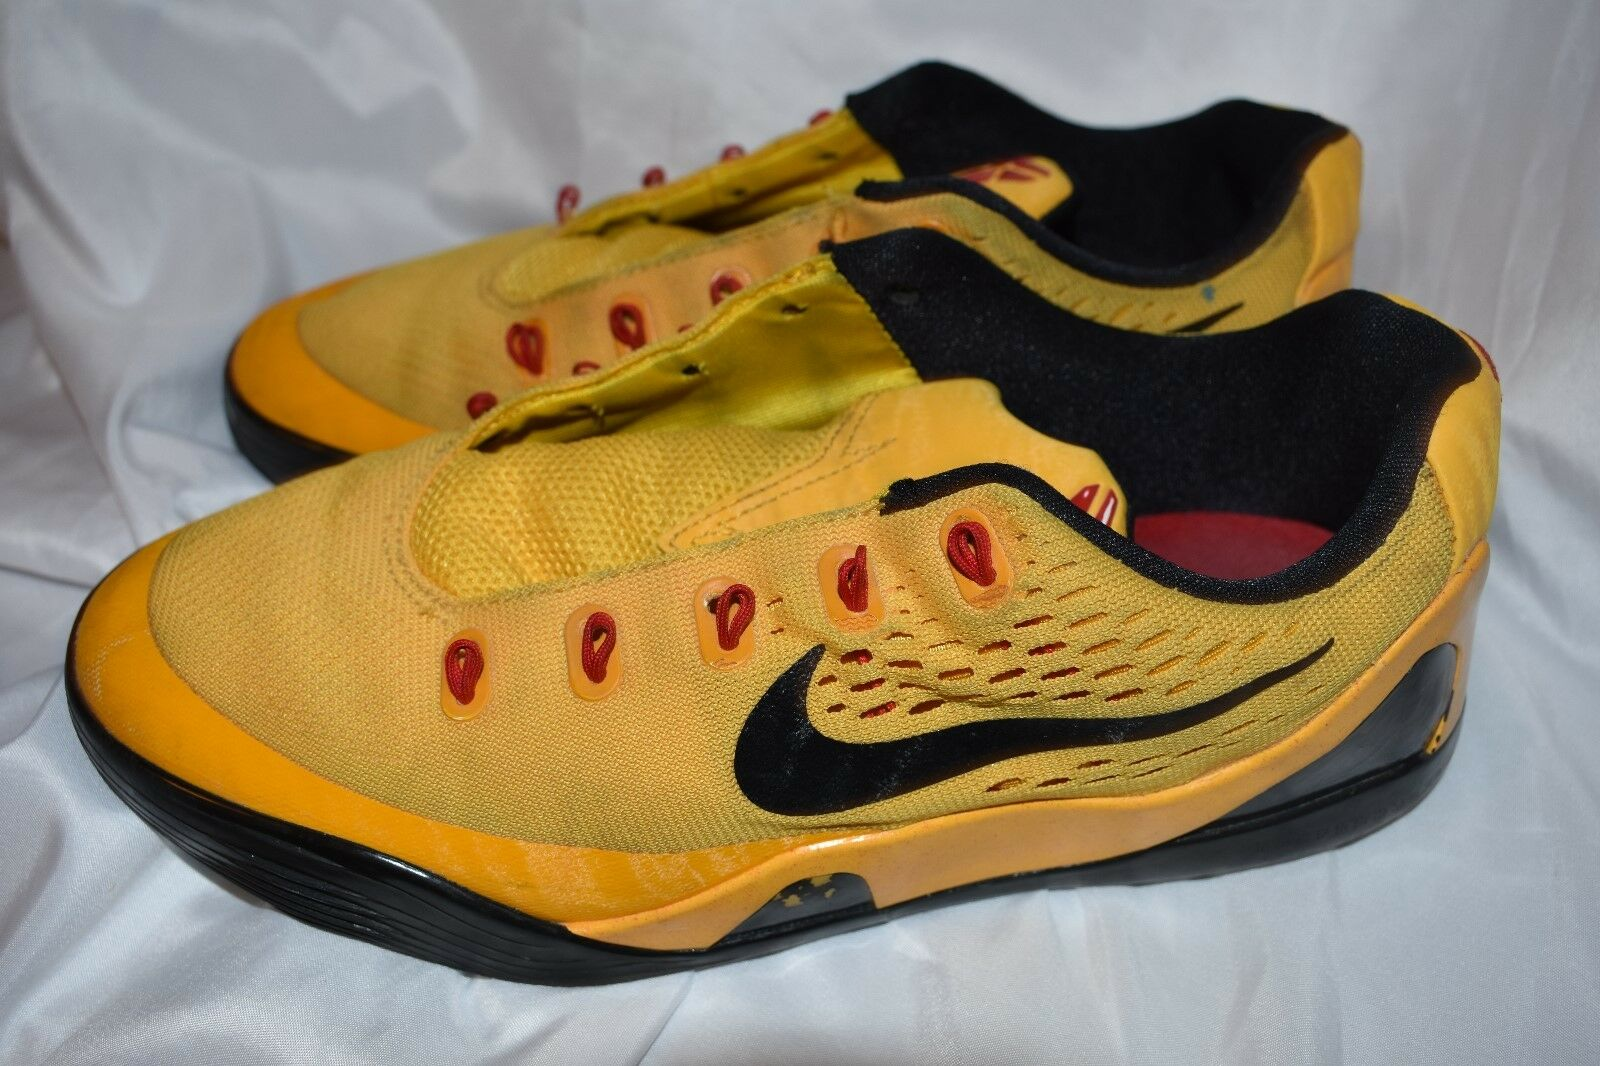 Nike Kobe IX 9 EM (gs) Low Bruce Lee Sz 6y 653593 700 for sale ... d88135d6d7d1